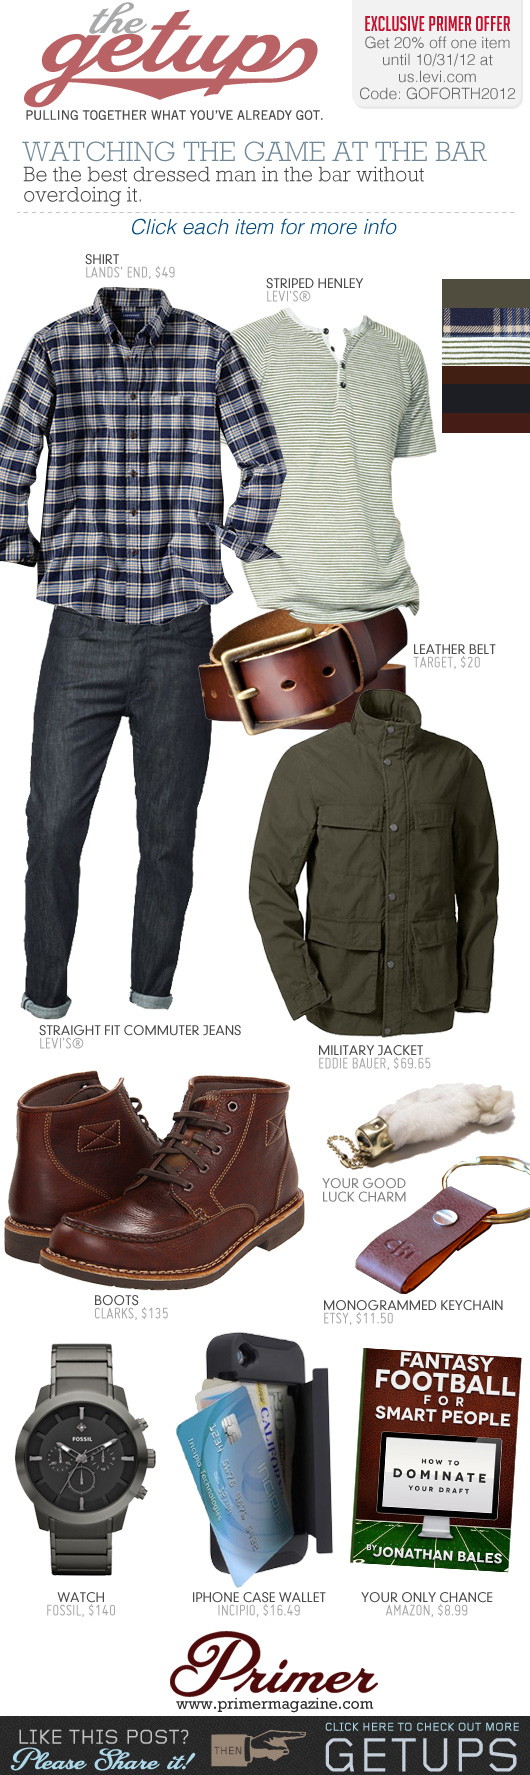 The Getup: Watching the Game at the Bar - Men\'s outfit inspiration with green jacket, dark blue jeans, and brown boots